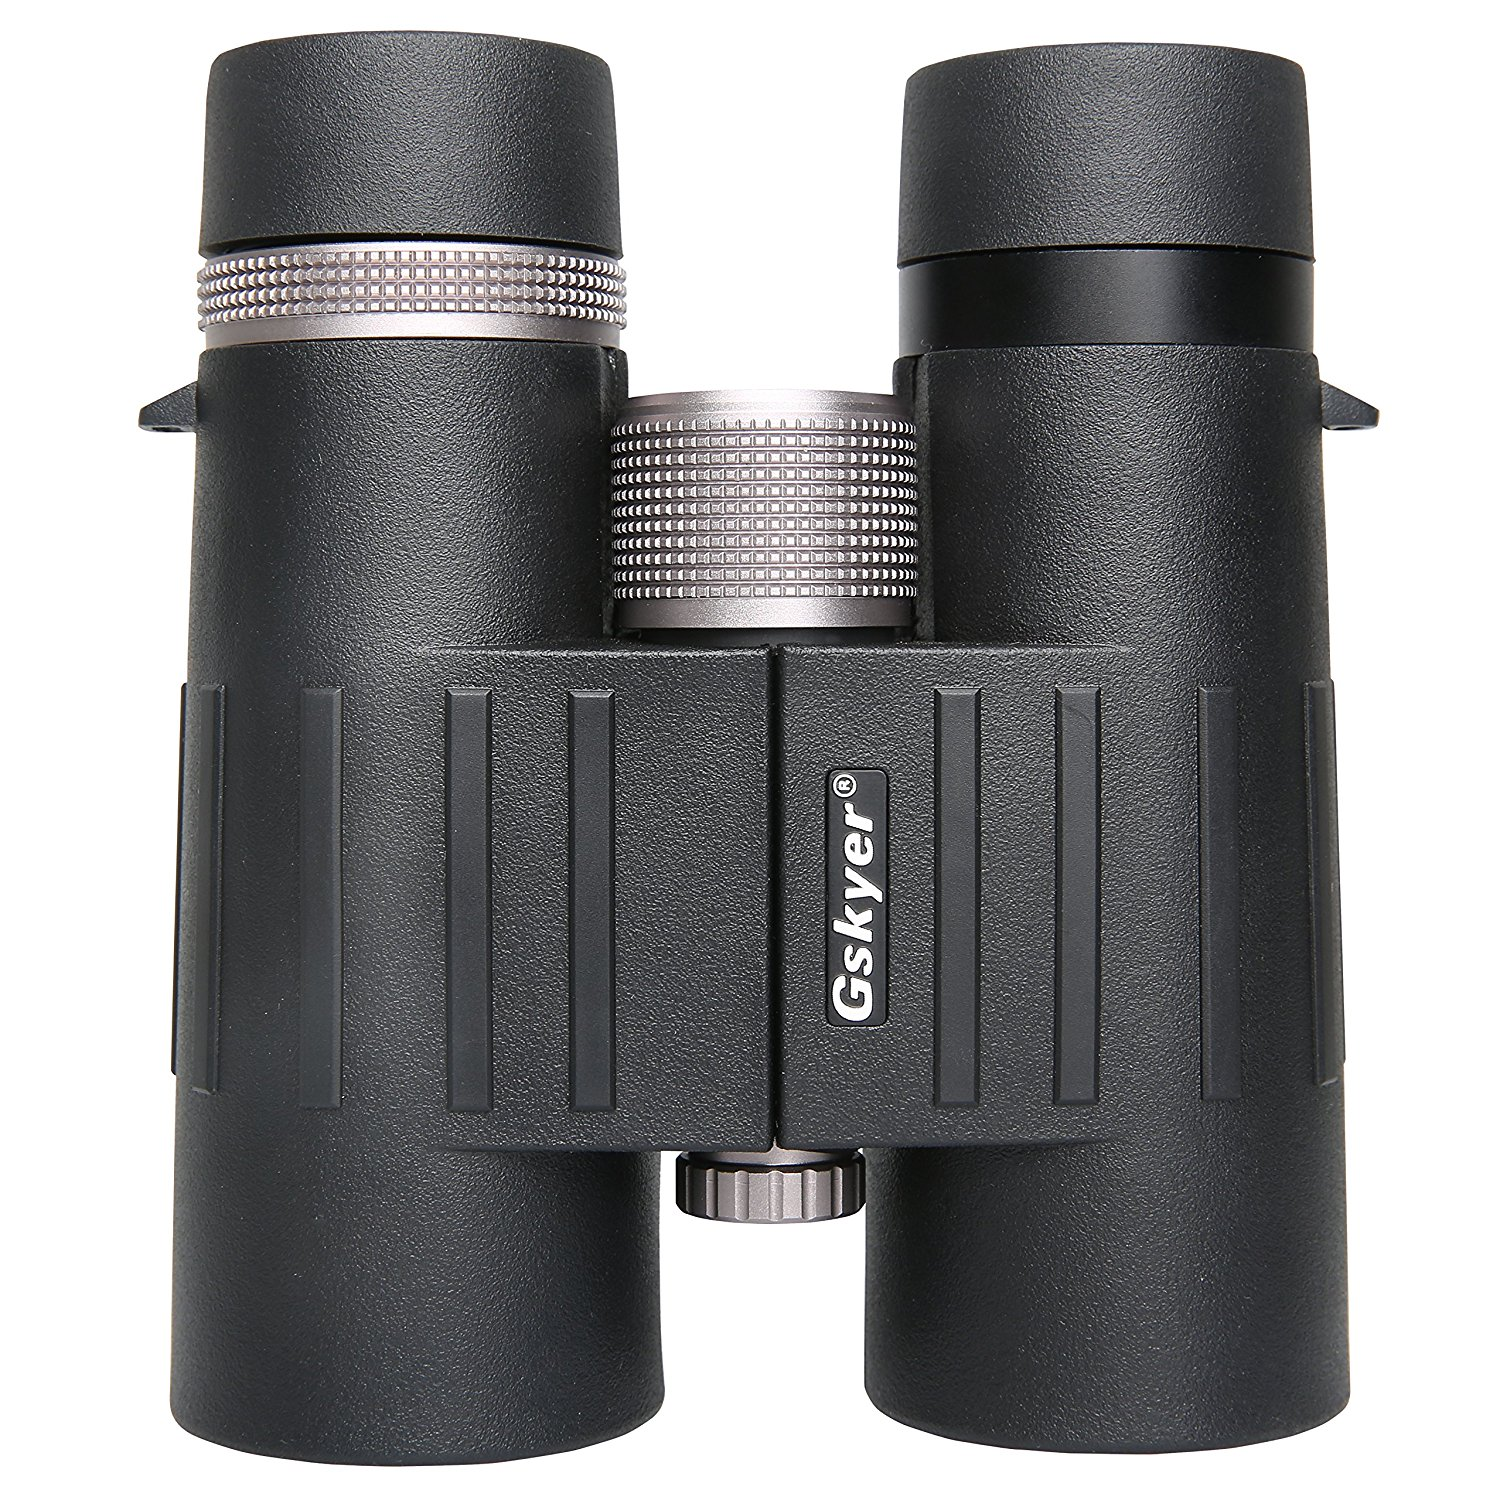 Gskyer Multi Coated Waterproof 8x42 Bak4 Prism Binocular